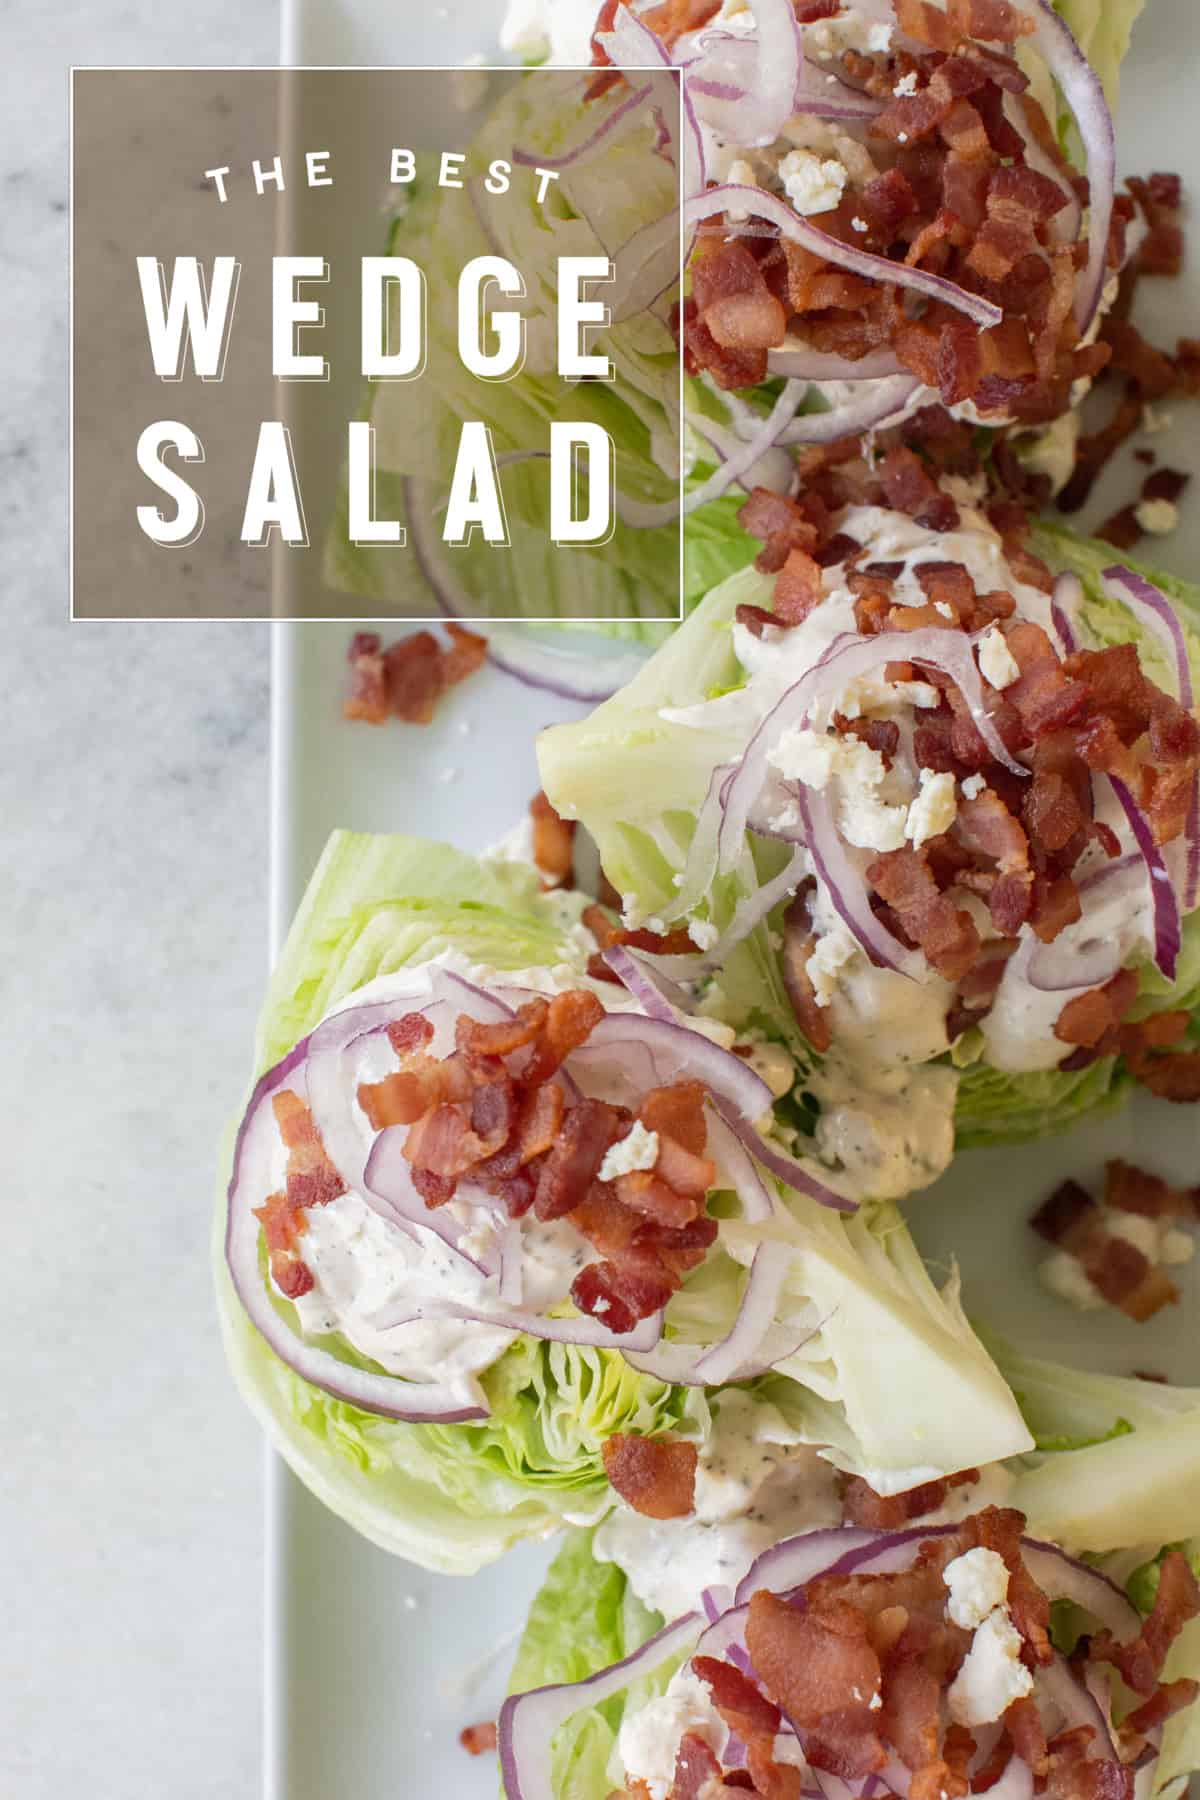 Classic wedge salad with wedge salad graphic overlay on the photo.